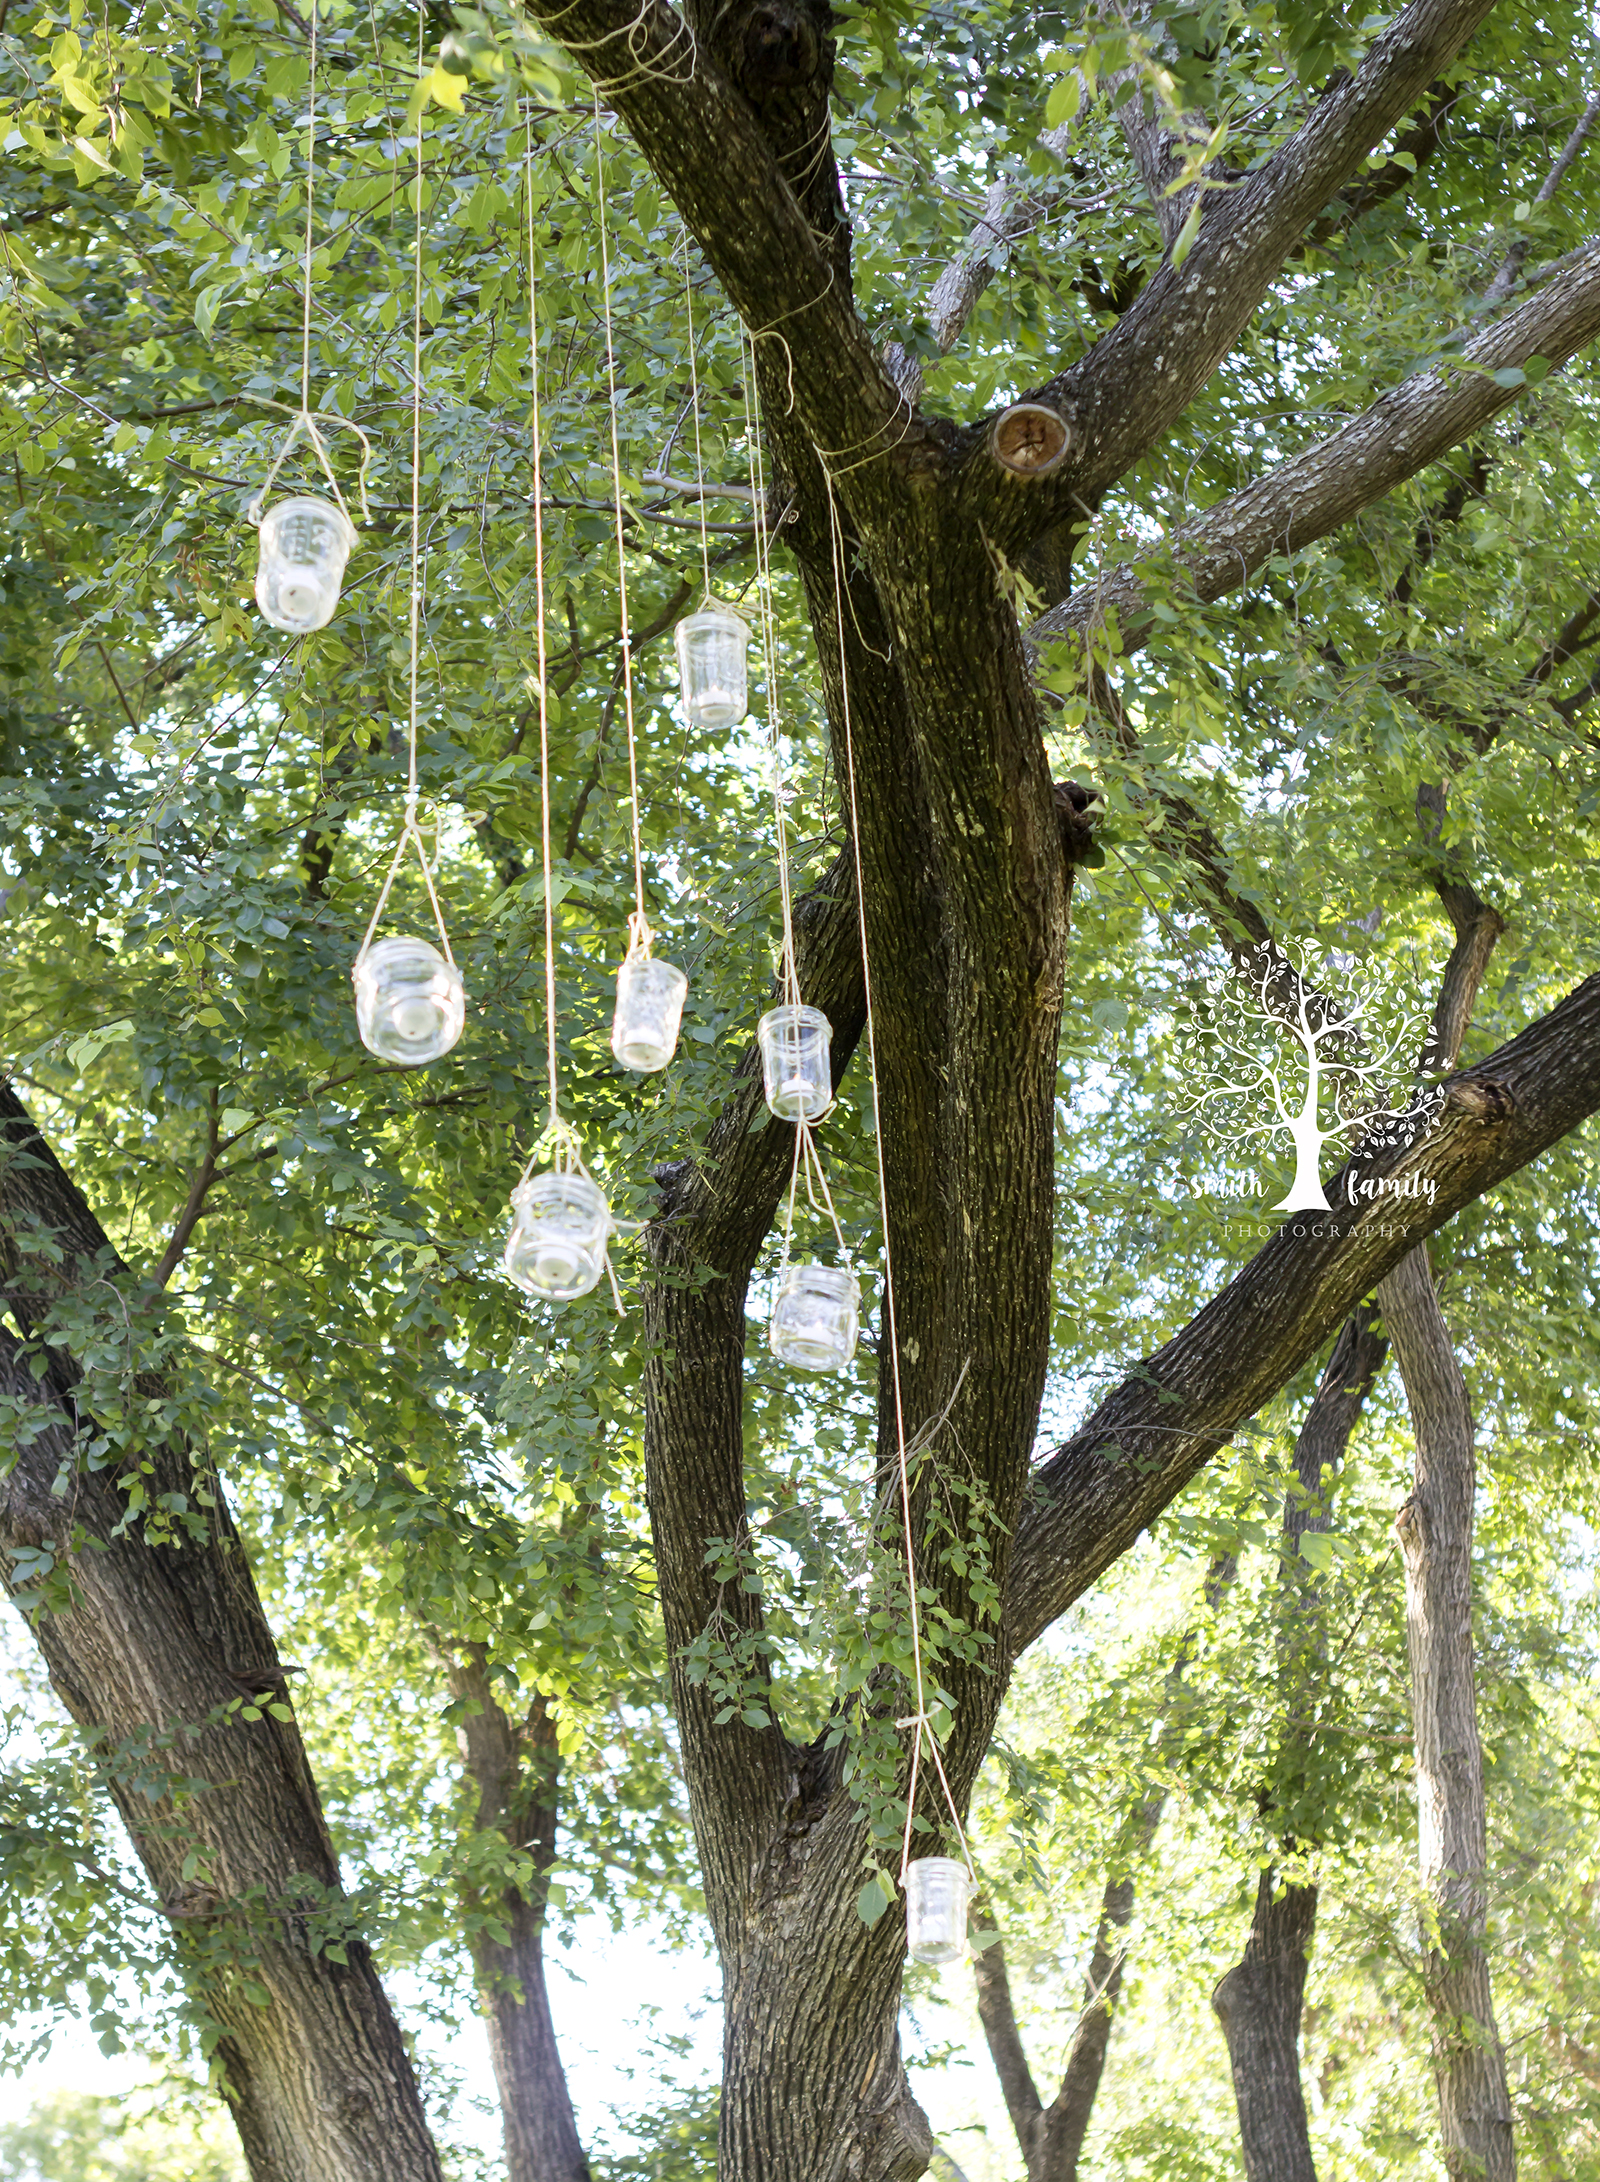 backyard_wedding_hanging_jar_lights_smith_family_photography_waco